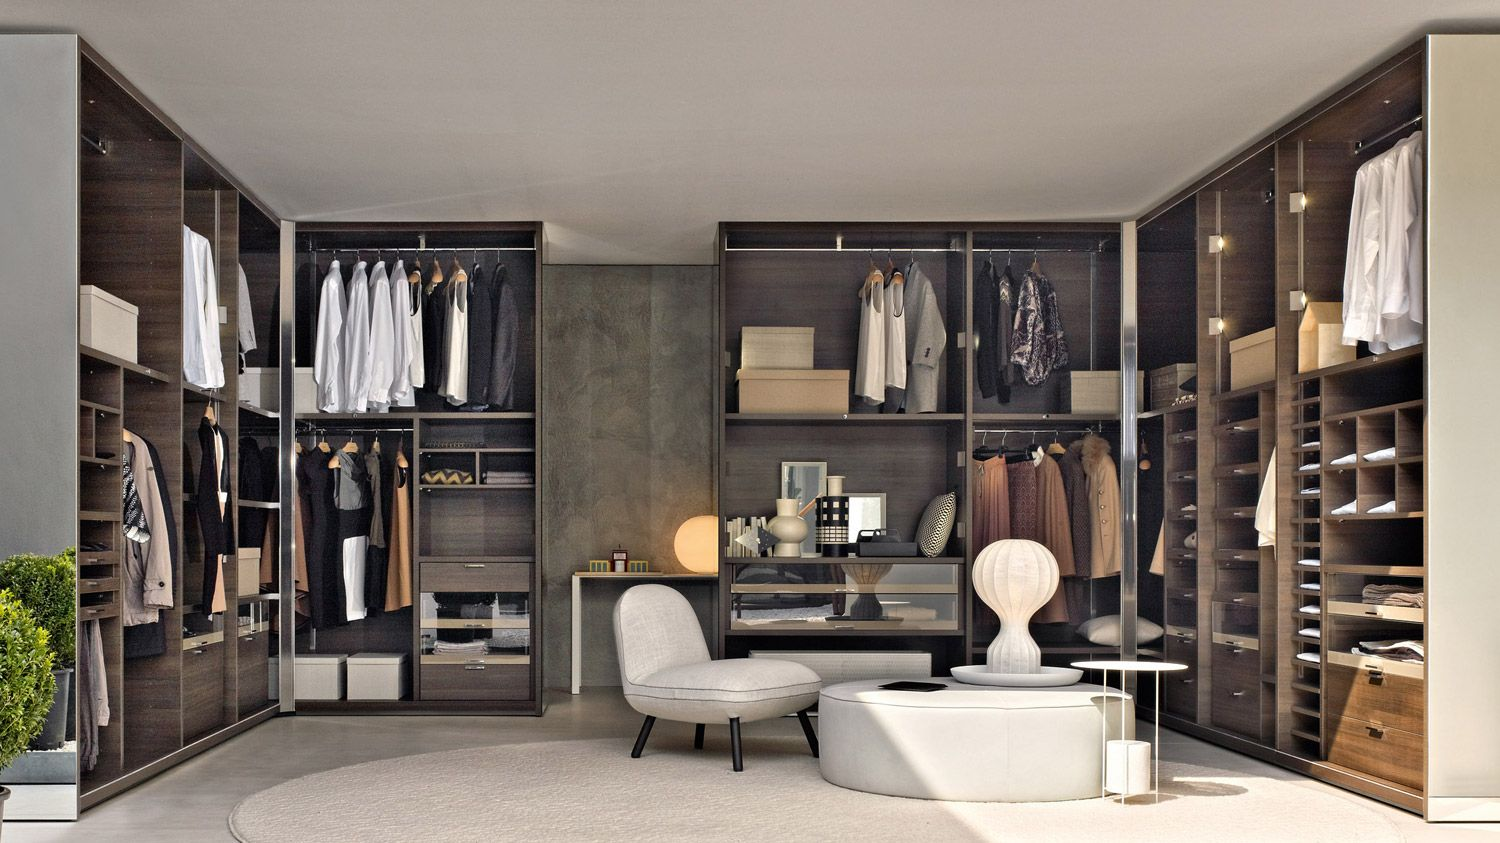 gliss quick walk in closets molteni c for the home pinterest wardrobes dressing room. Black Bedroom Furniture Sets. Home Design Ideas